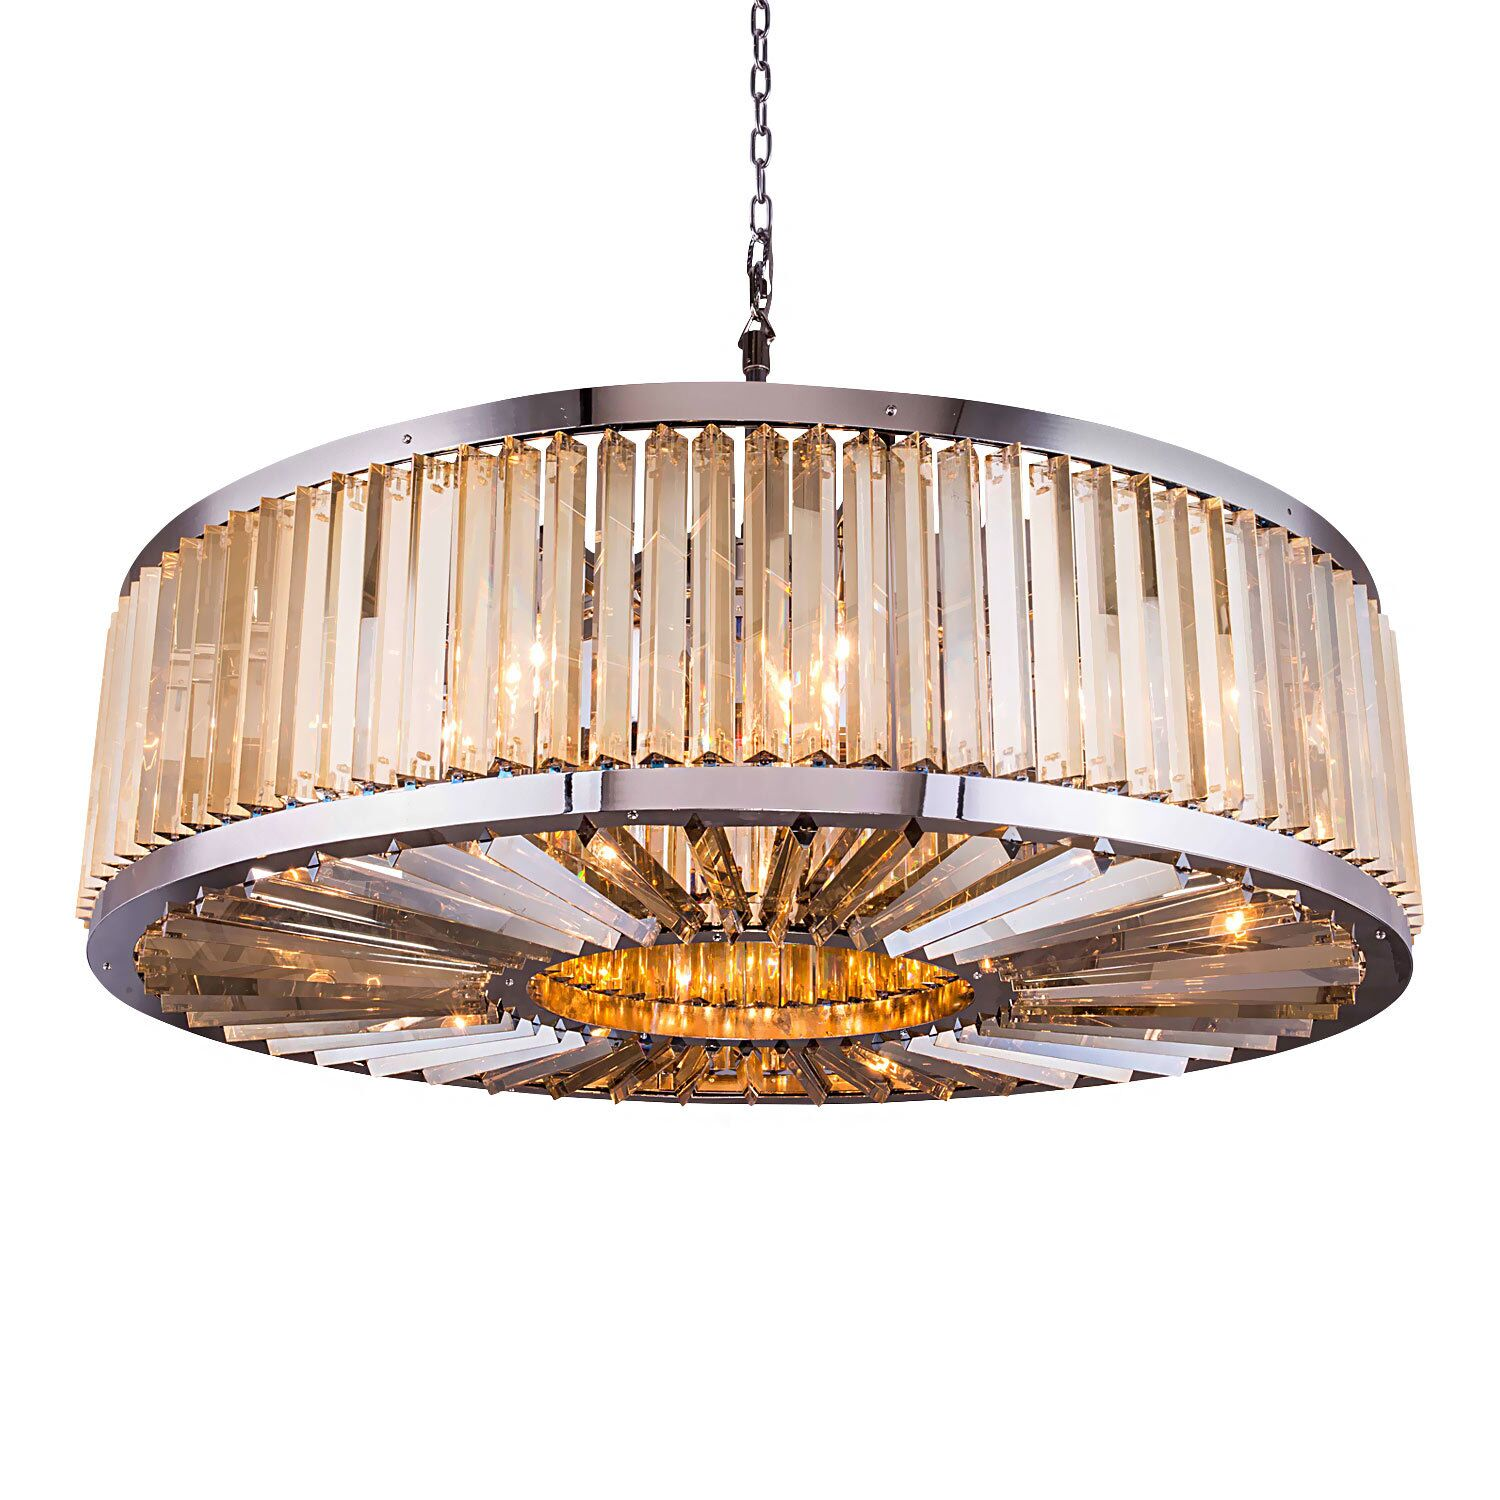 Herkimer 10-Light Drum Chandelier Finish / Shade Color: Polished Nickel/Golden Teak, Size: 75.5